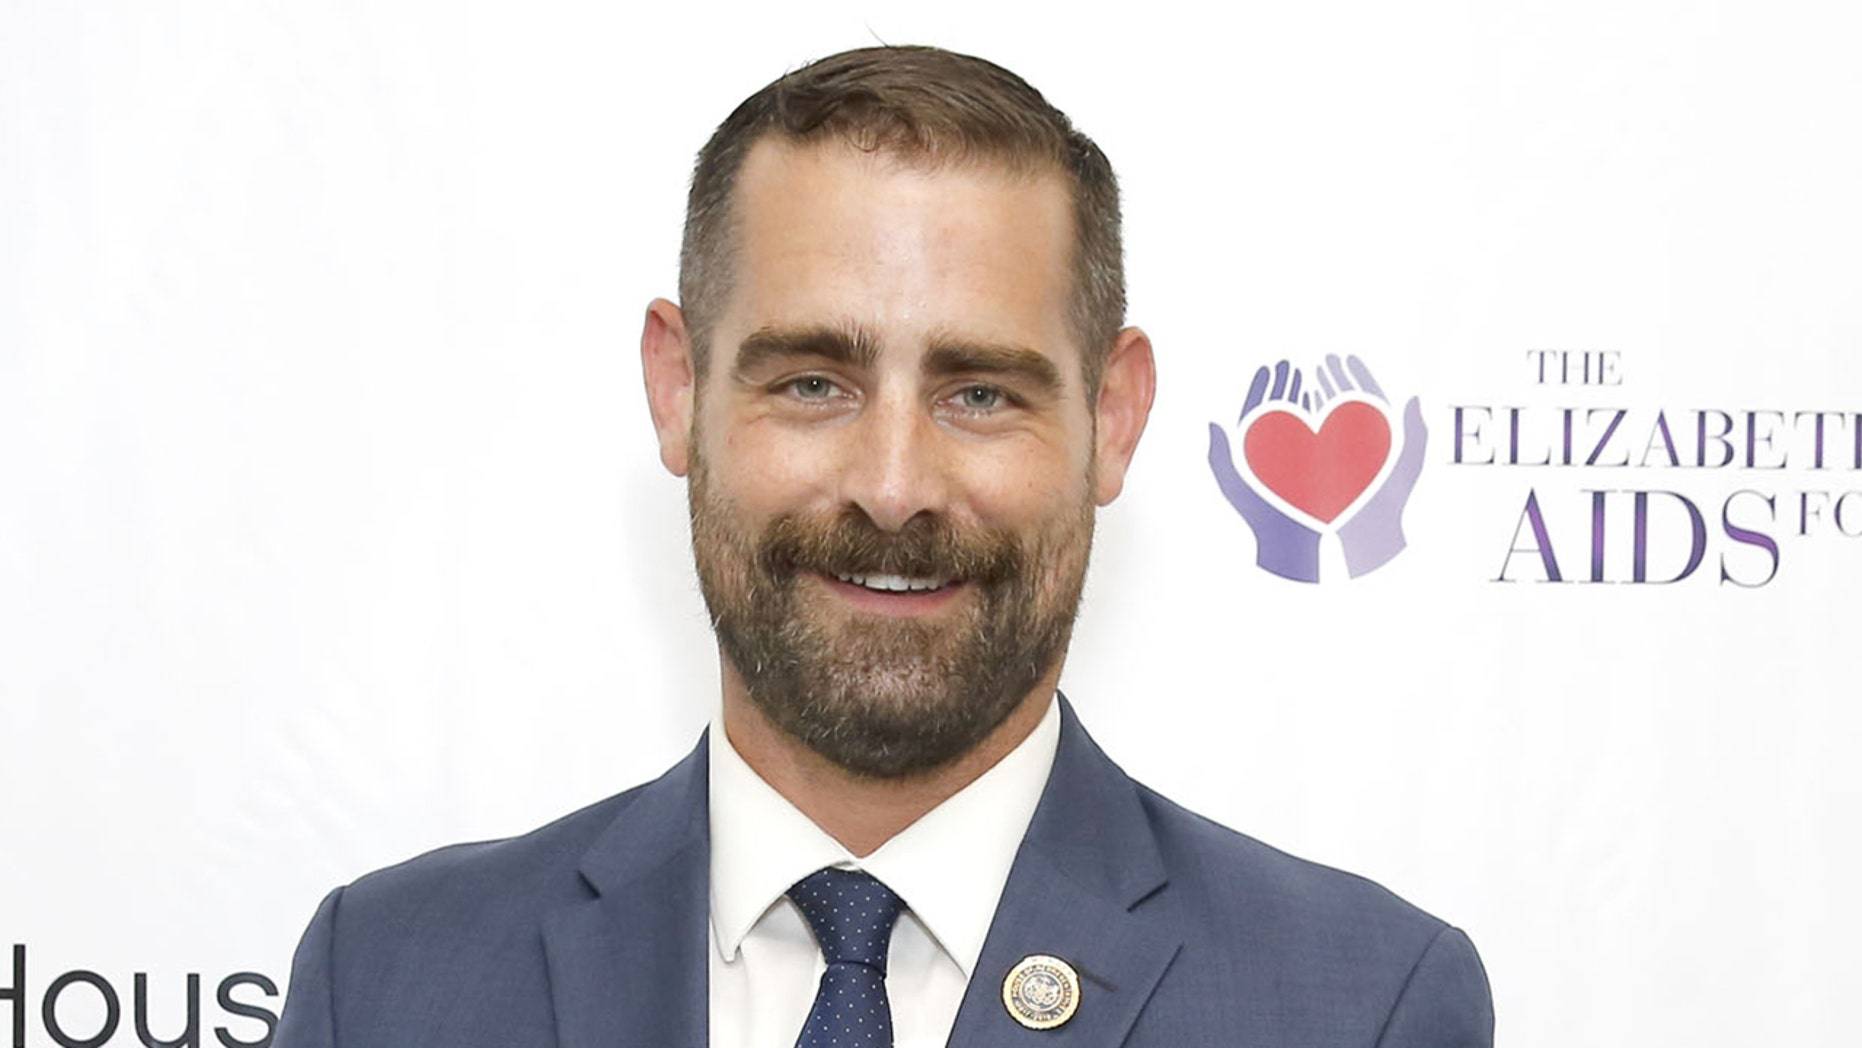 PA State Representative Brian Sims recorded himself harassing a pro-life woman peacefully protesting outside a Planned Parenthood abortion clinic in Sims' Philadelphia district. (Photo by Rachel Murray/Getty Images for ETAF)